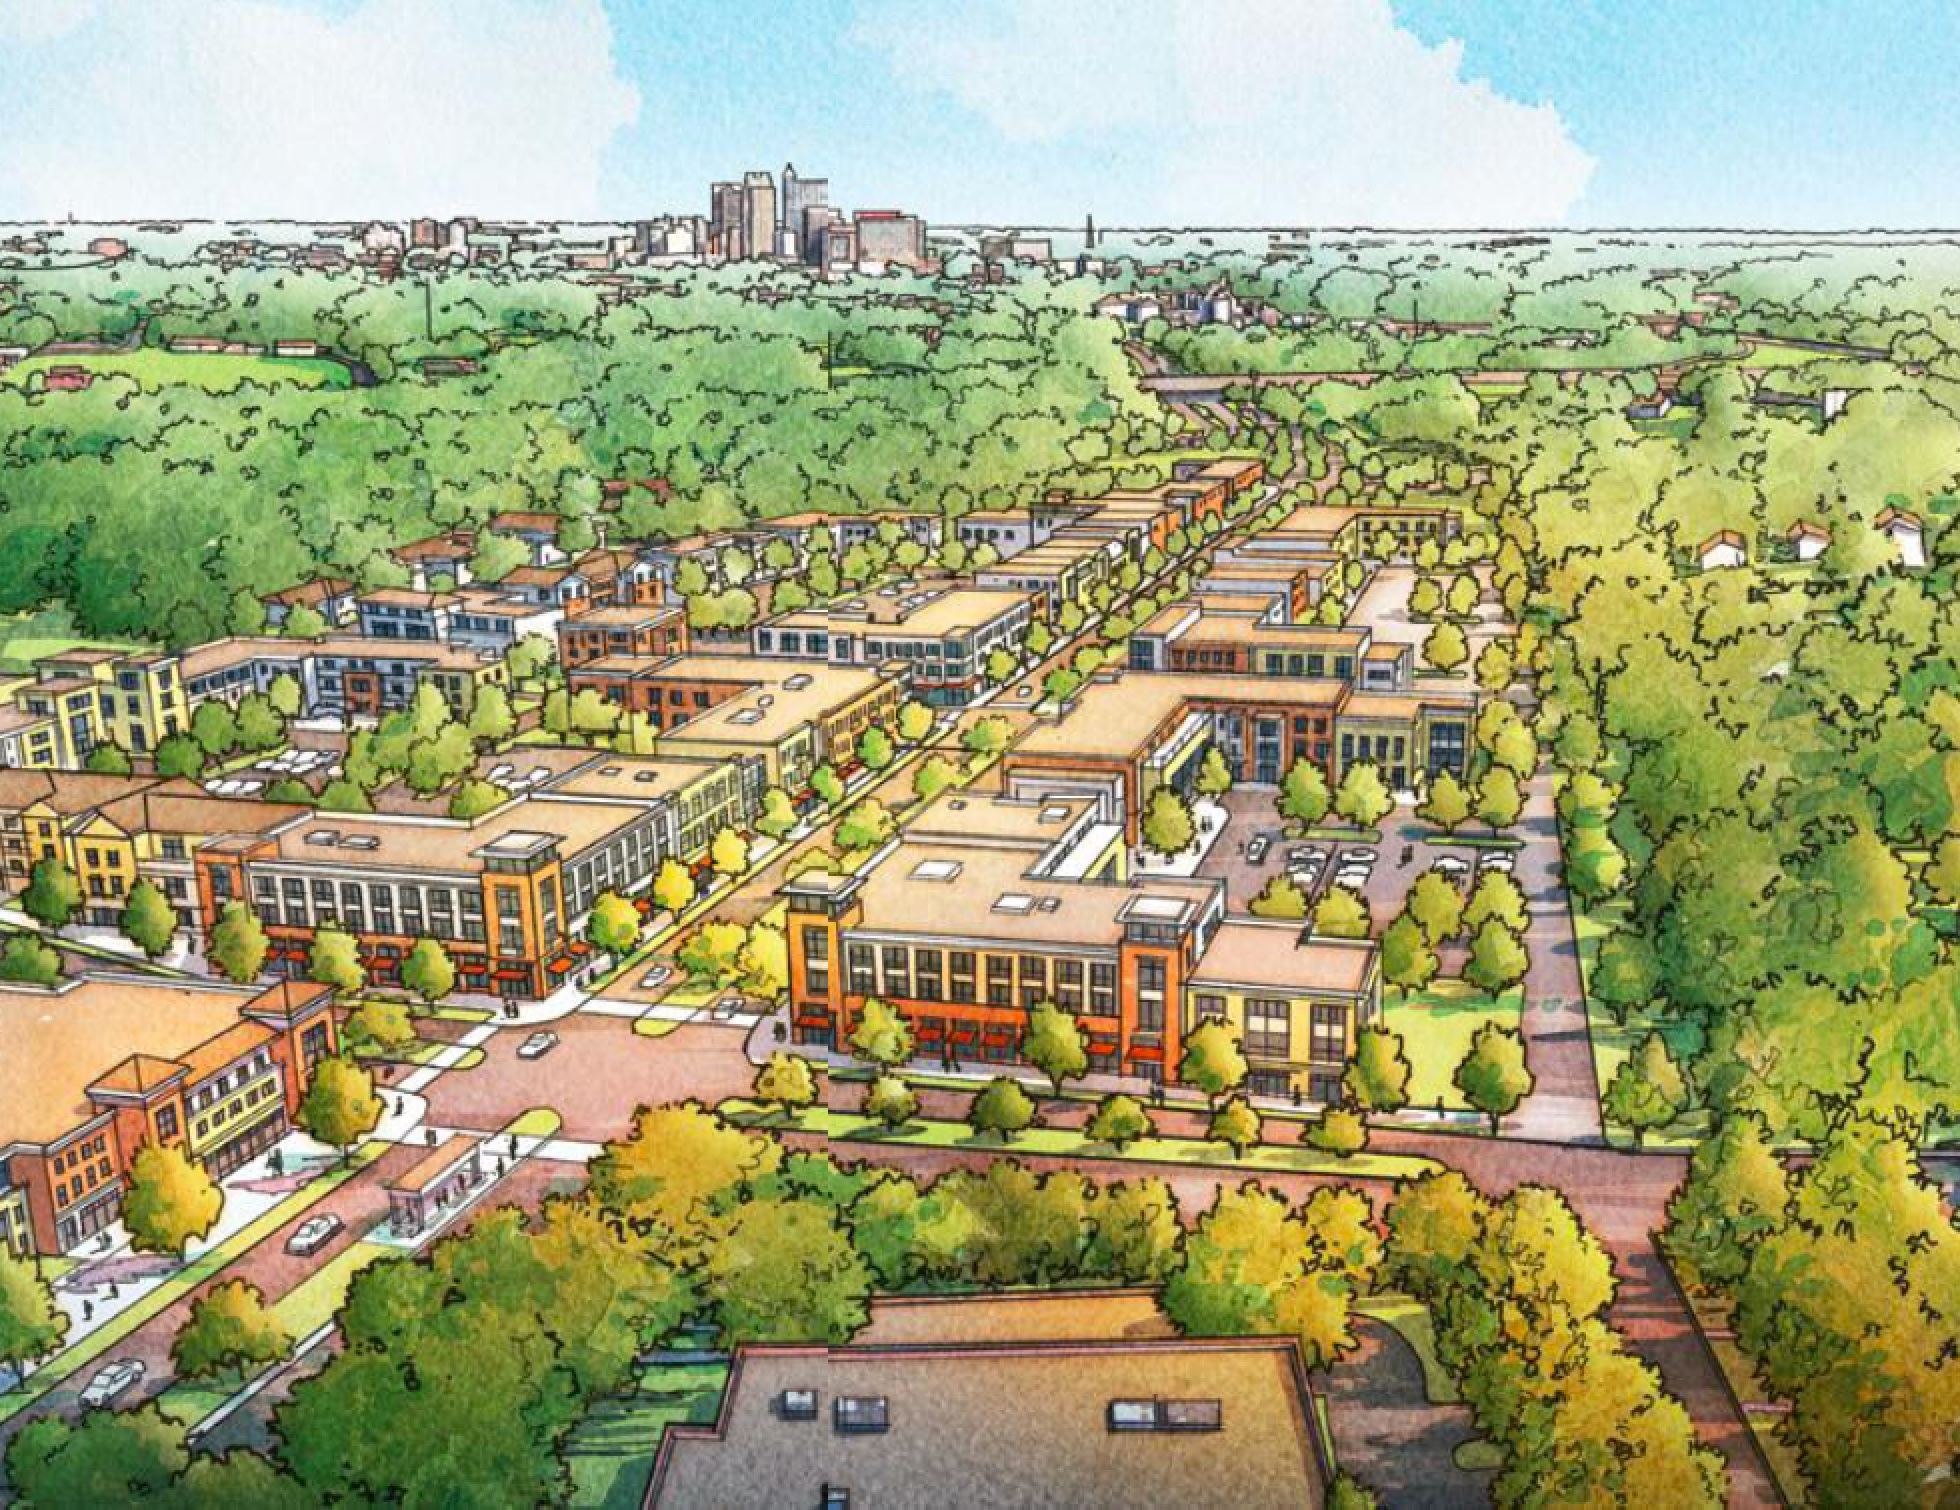 At Kane site in South Raleigh, residents choose a new neighborhood over a 2nd Downtown